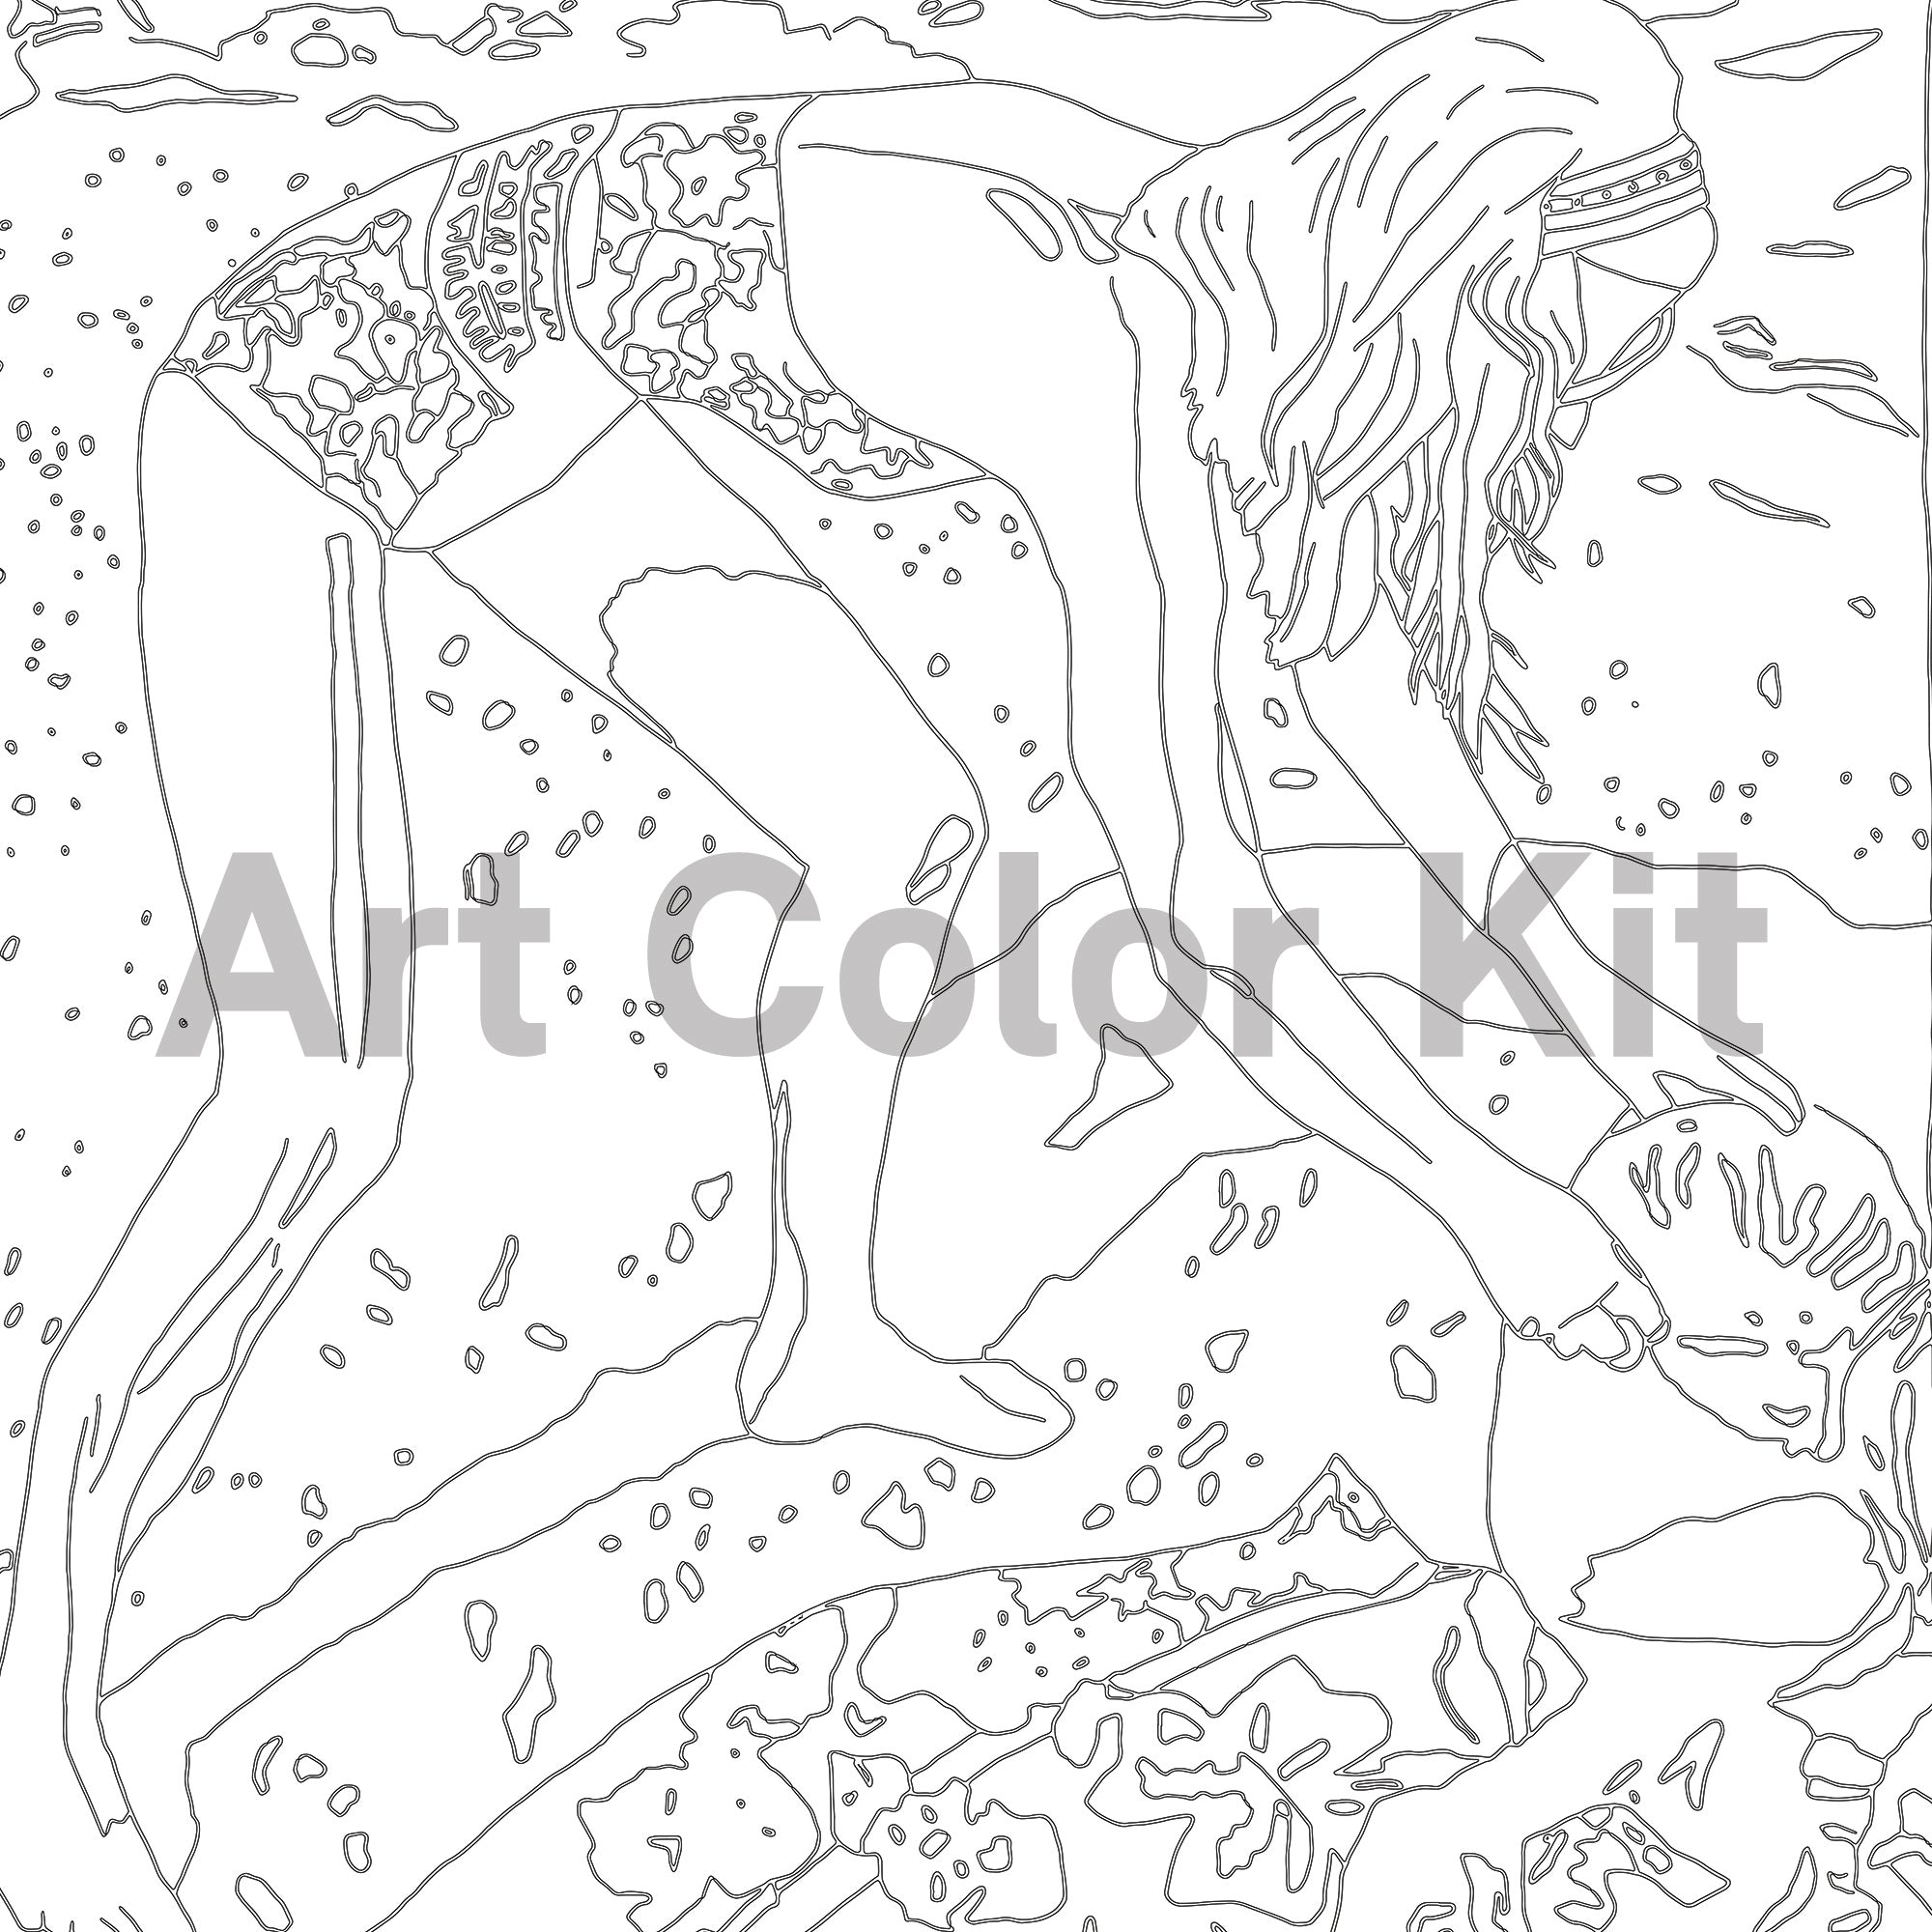 "Close up of Jon Nowell's painting entitled ""Honeymoon"". Depicts a young woman in a bathing suit on a beach looking in her bag on top of a patterned beach towel in black outlines on white. ""Art Color Kit"" watermark across the center of the square image."